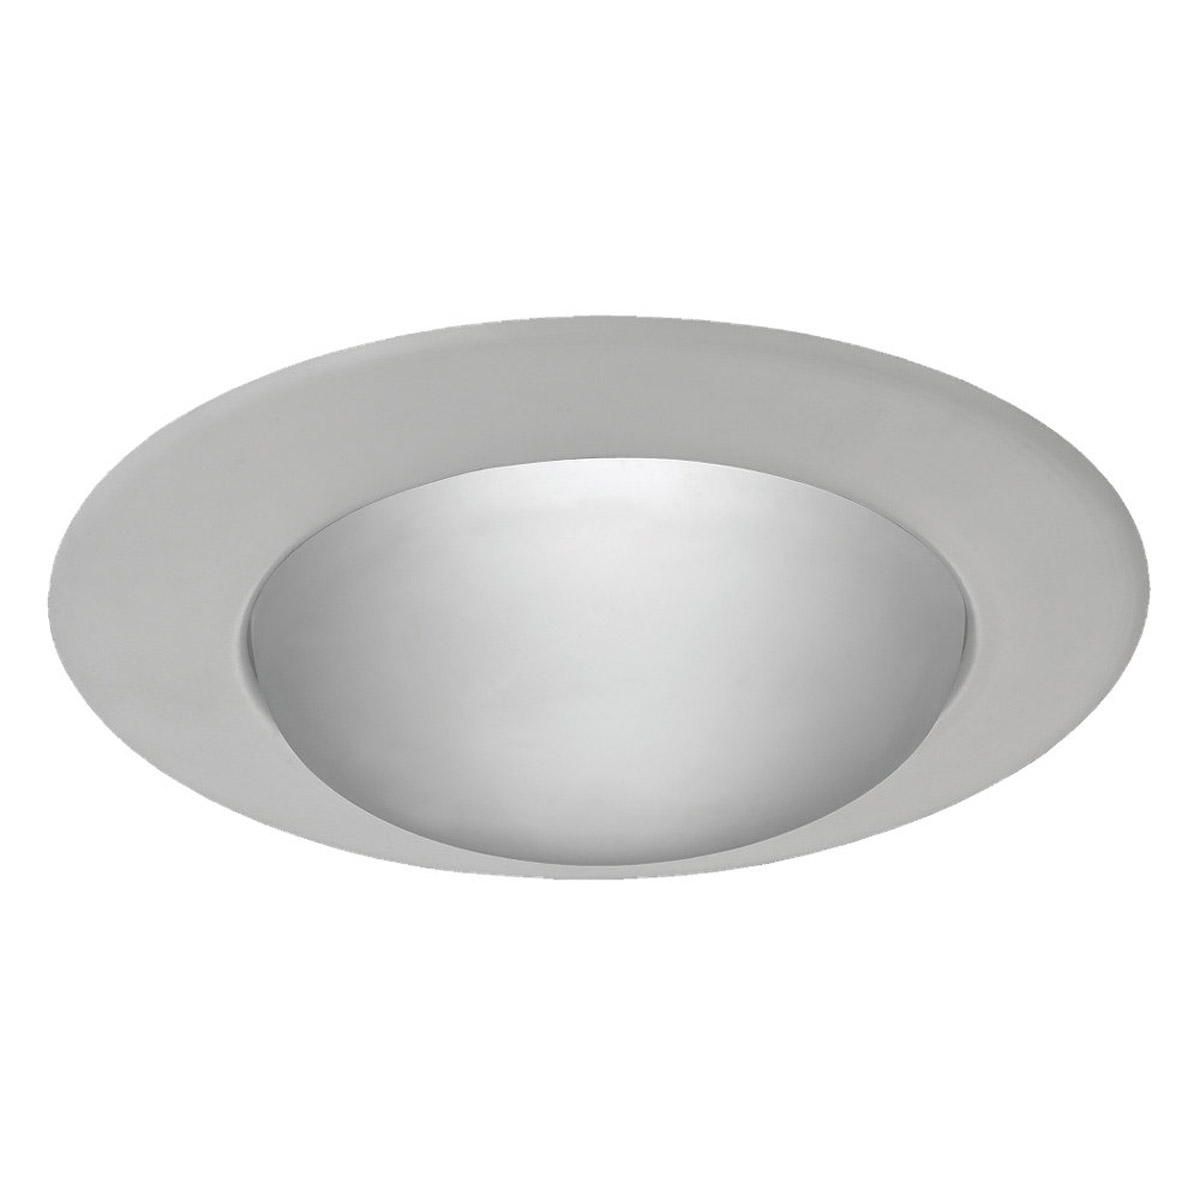 Sea Gull Lighting Signature Recessed Trim Only in White 11134AT-15 photo